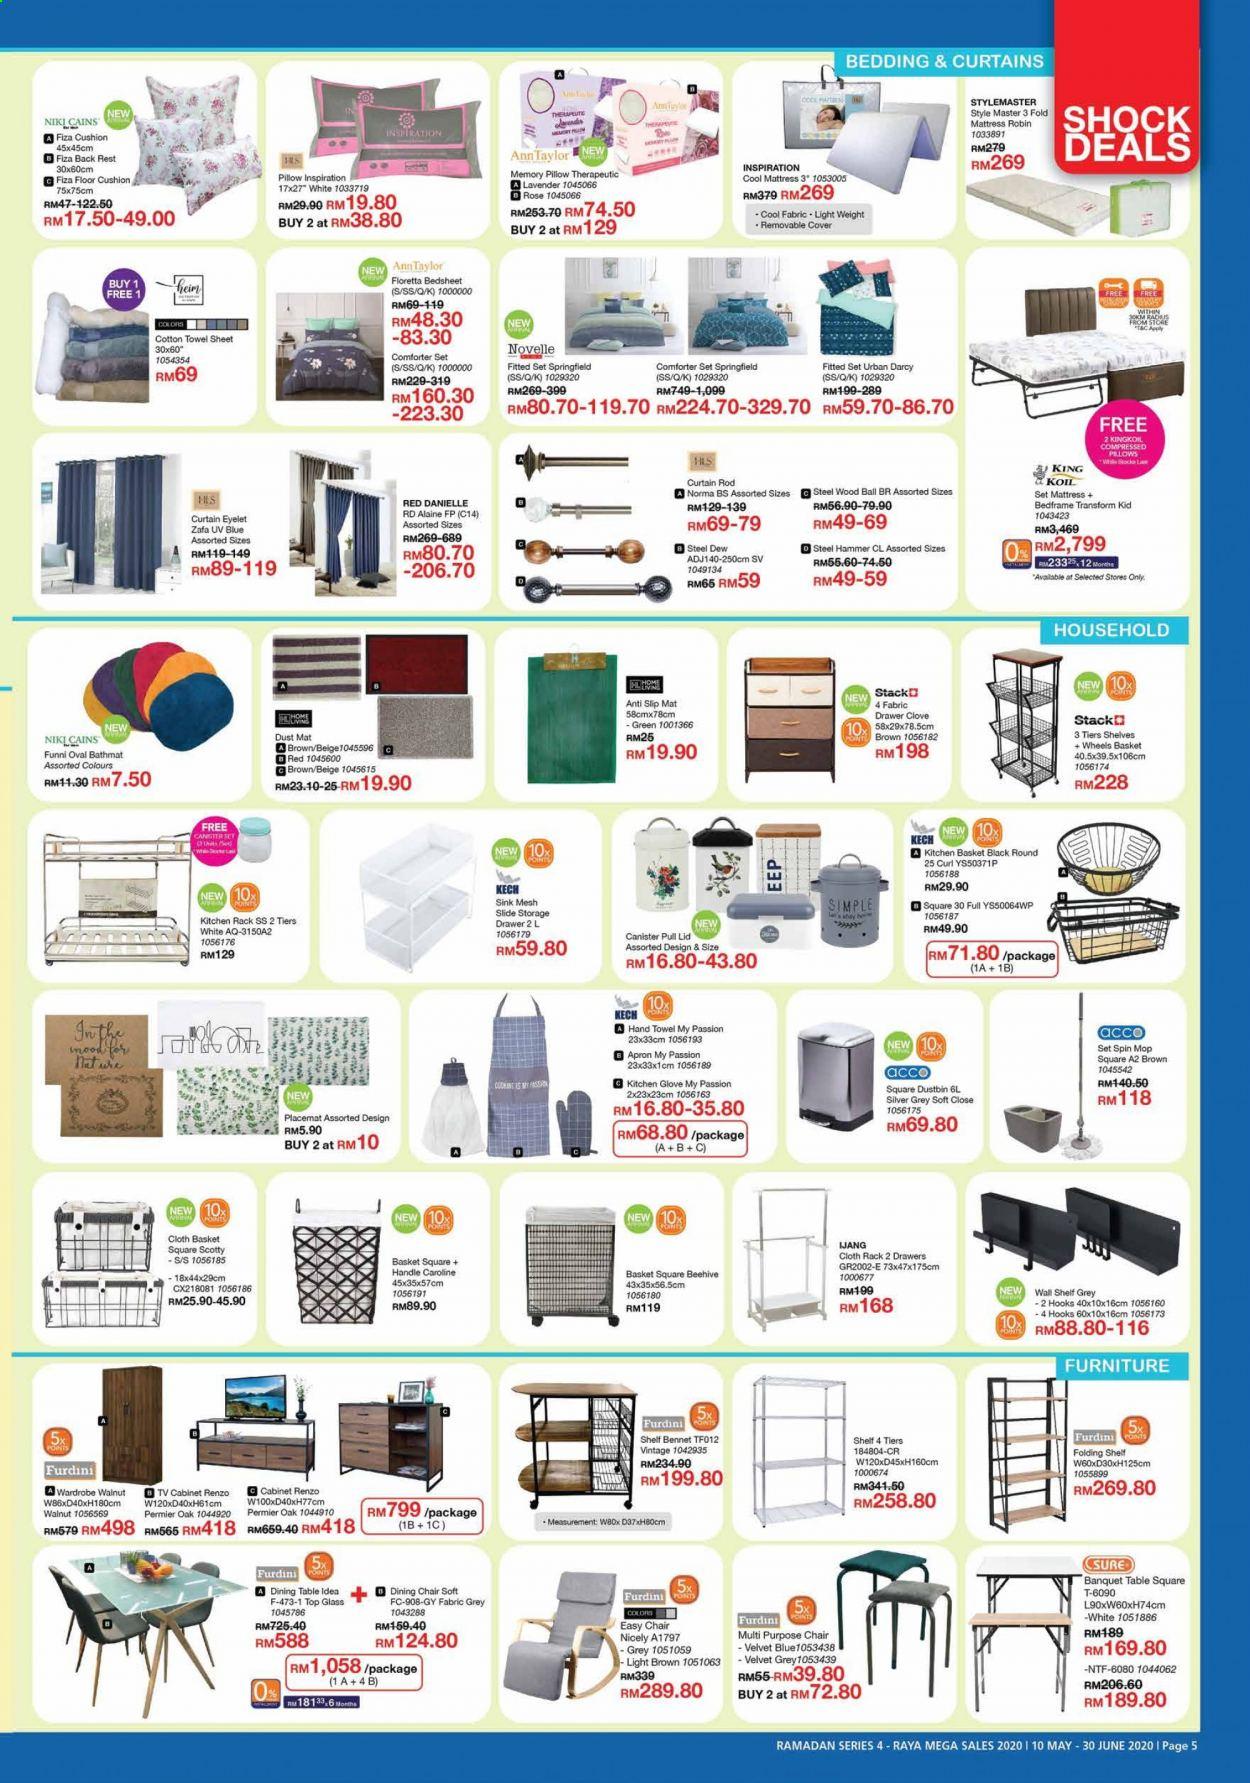 Iklan HomePro - 10.05.2020 - 30.06.2020 - Produk jualan - pillow, apron, basket, bedding, cabinet, comforter, comforter set, cotton, cover, curtain, cushion, d3, dining table, drawer, furniture, glass, glove, chair, hook, hand towel, handles, kitchen, lid, mat, mattress, pan, rack, sheet, shelves, sink, stack, storage, table, top, towel, wall shelf, wardrobe, ball. Halaman 5.